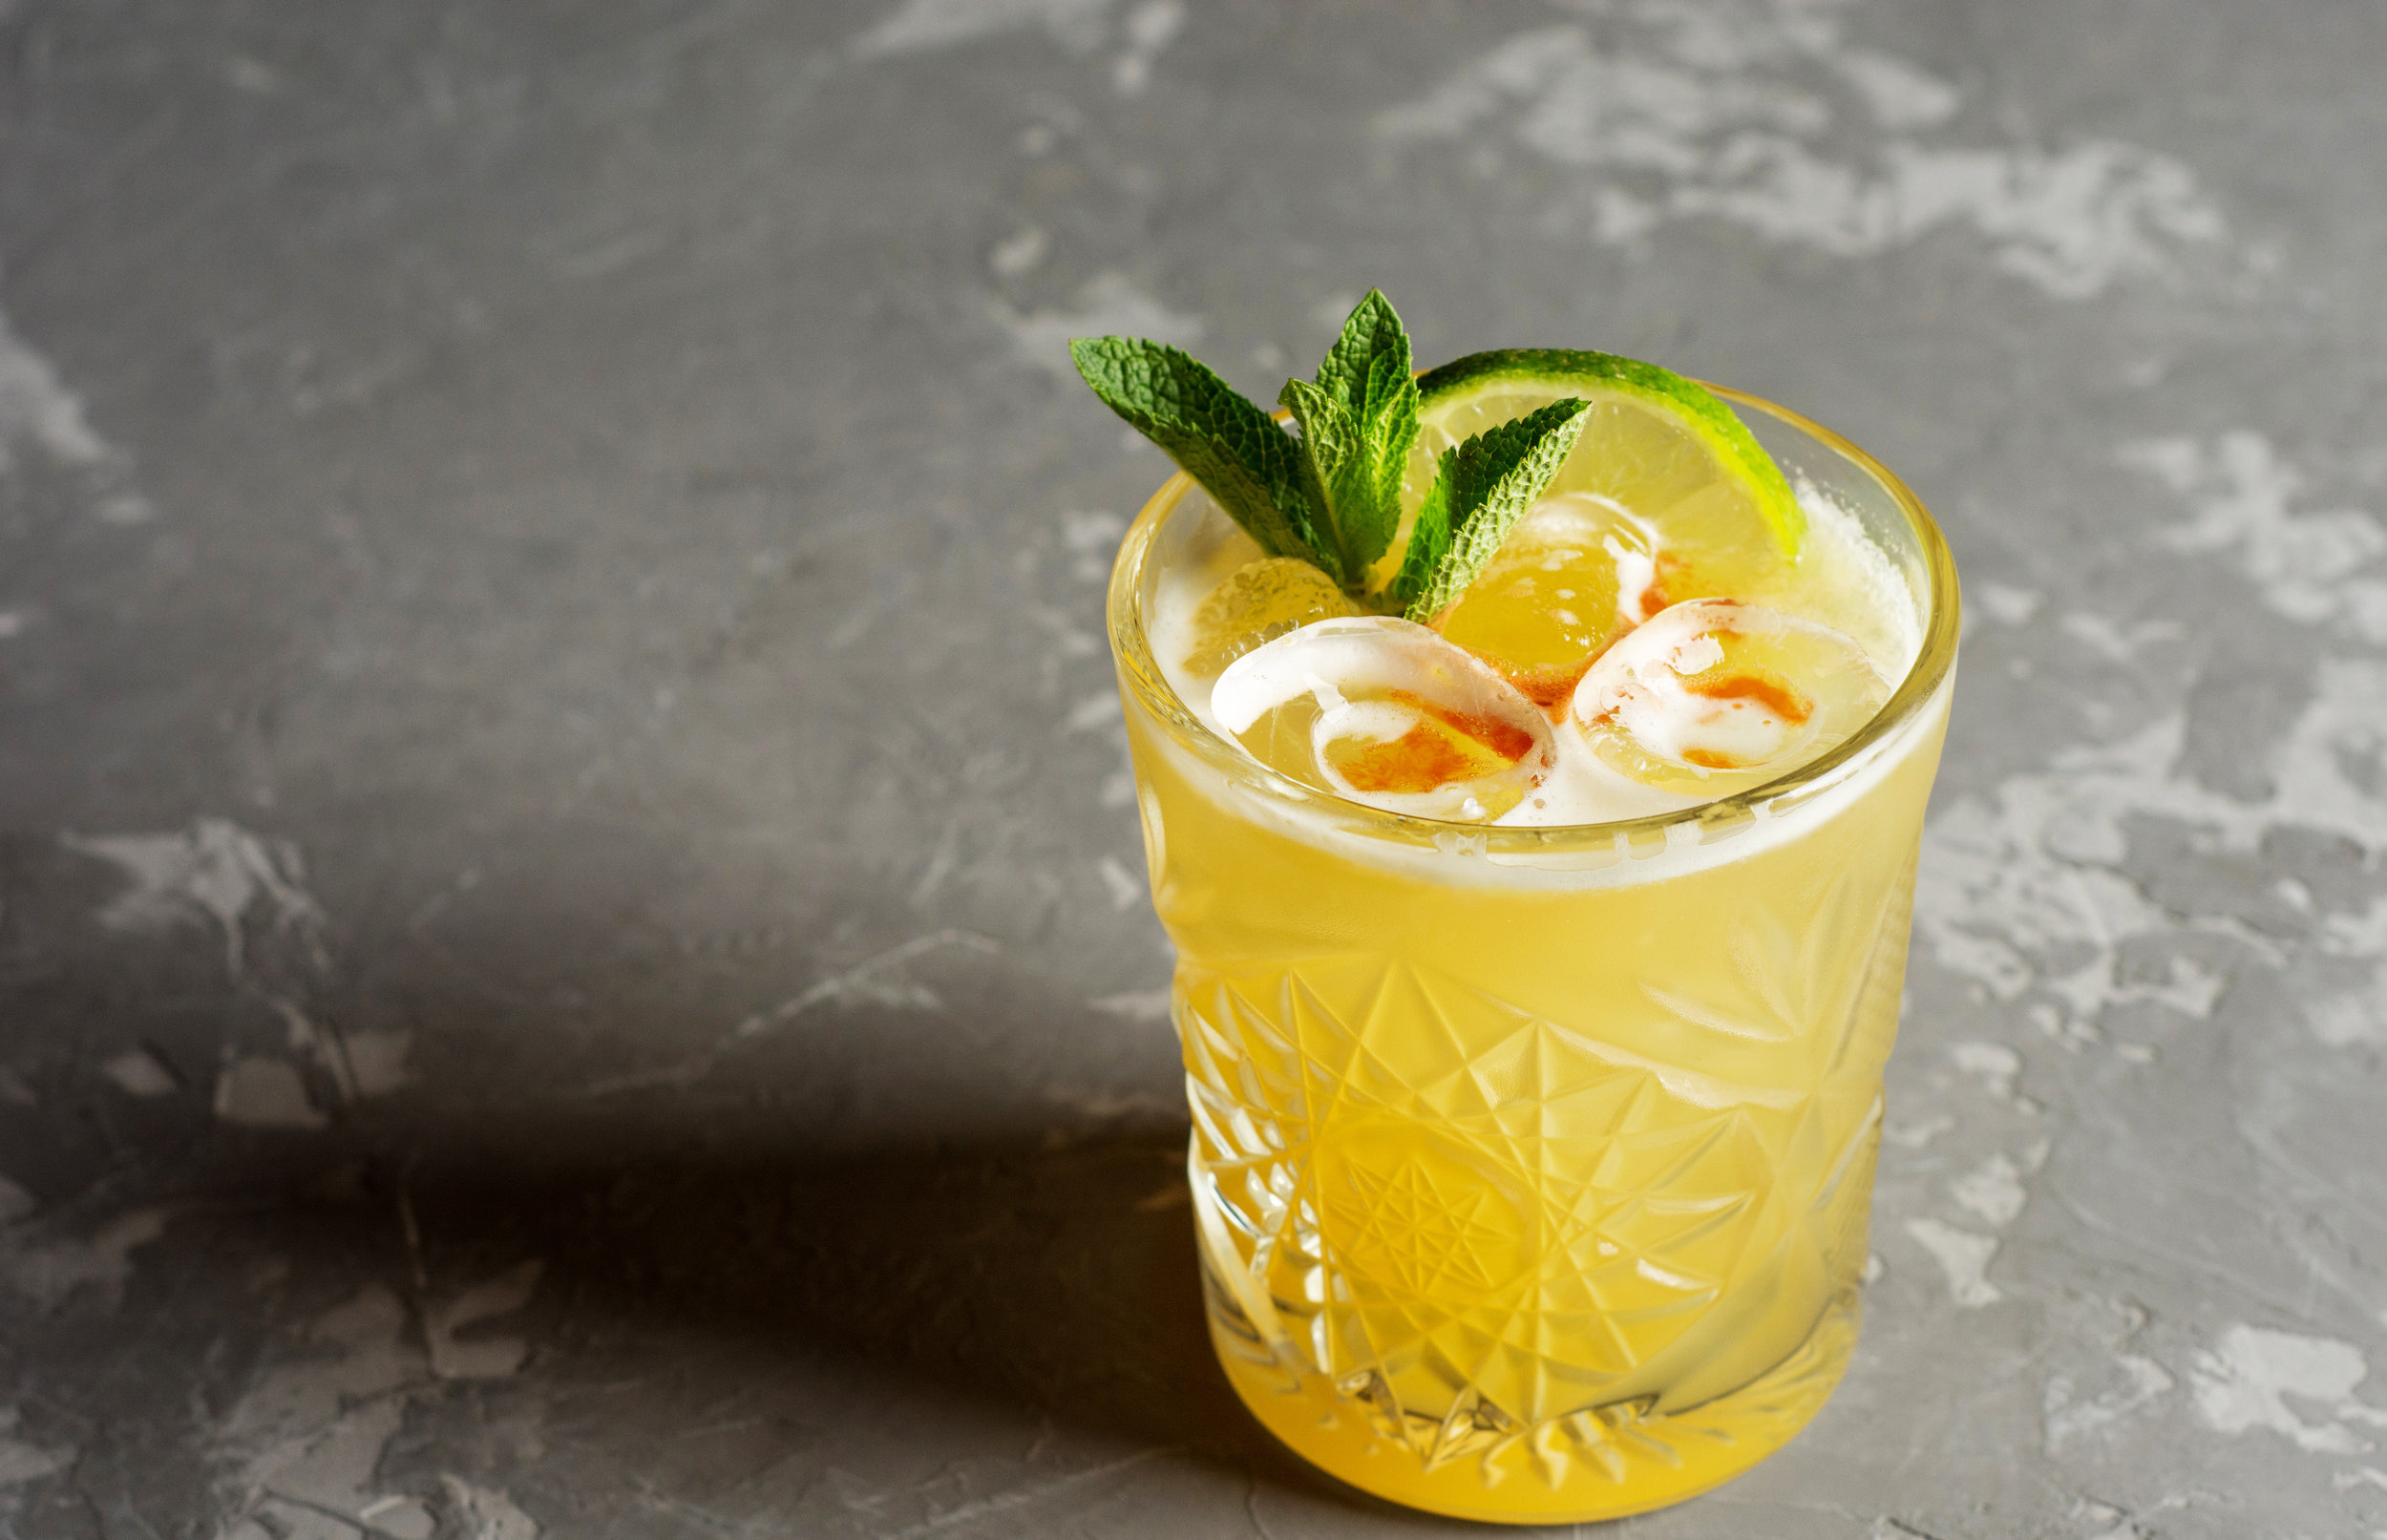 Lemon Basil Margarita, courtesy Elegant Affairs